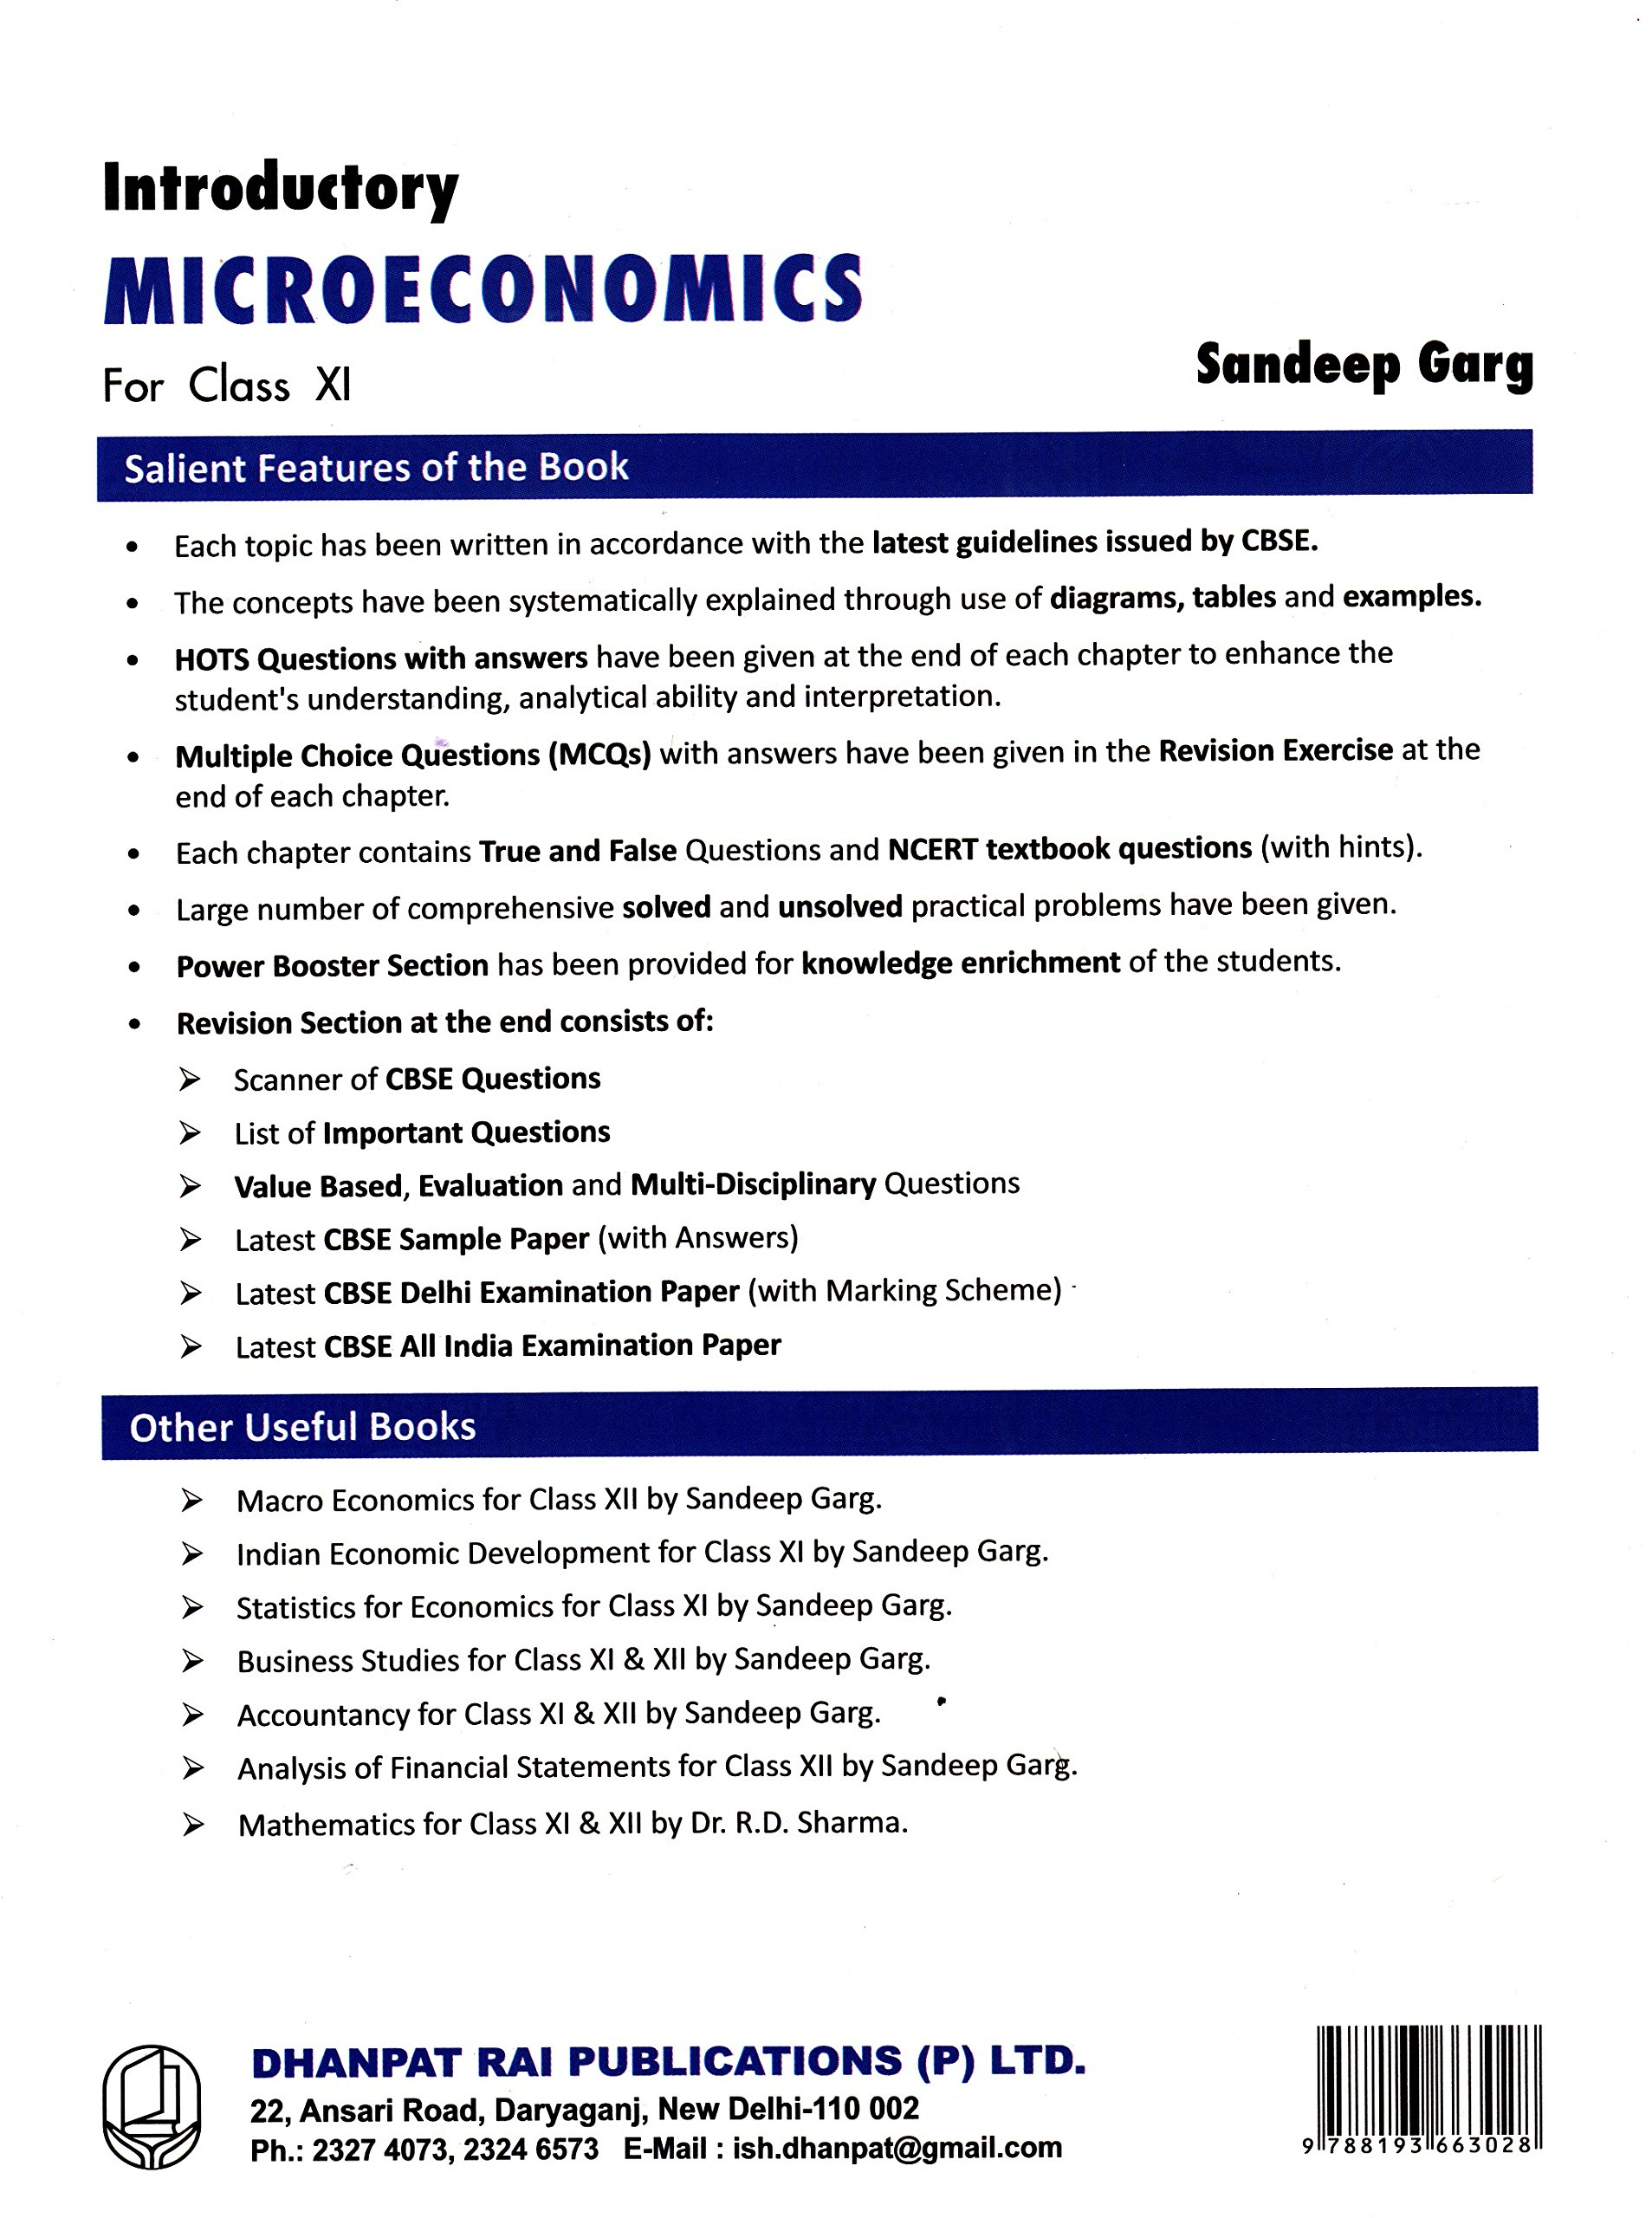 Introductory Microeconomics for Class 11 2018-2019 Session by